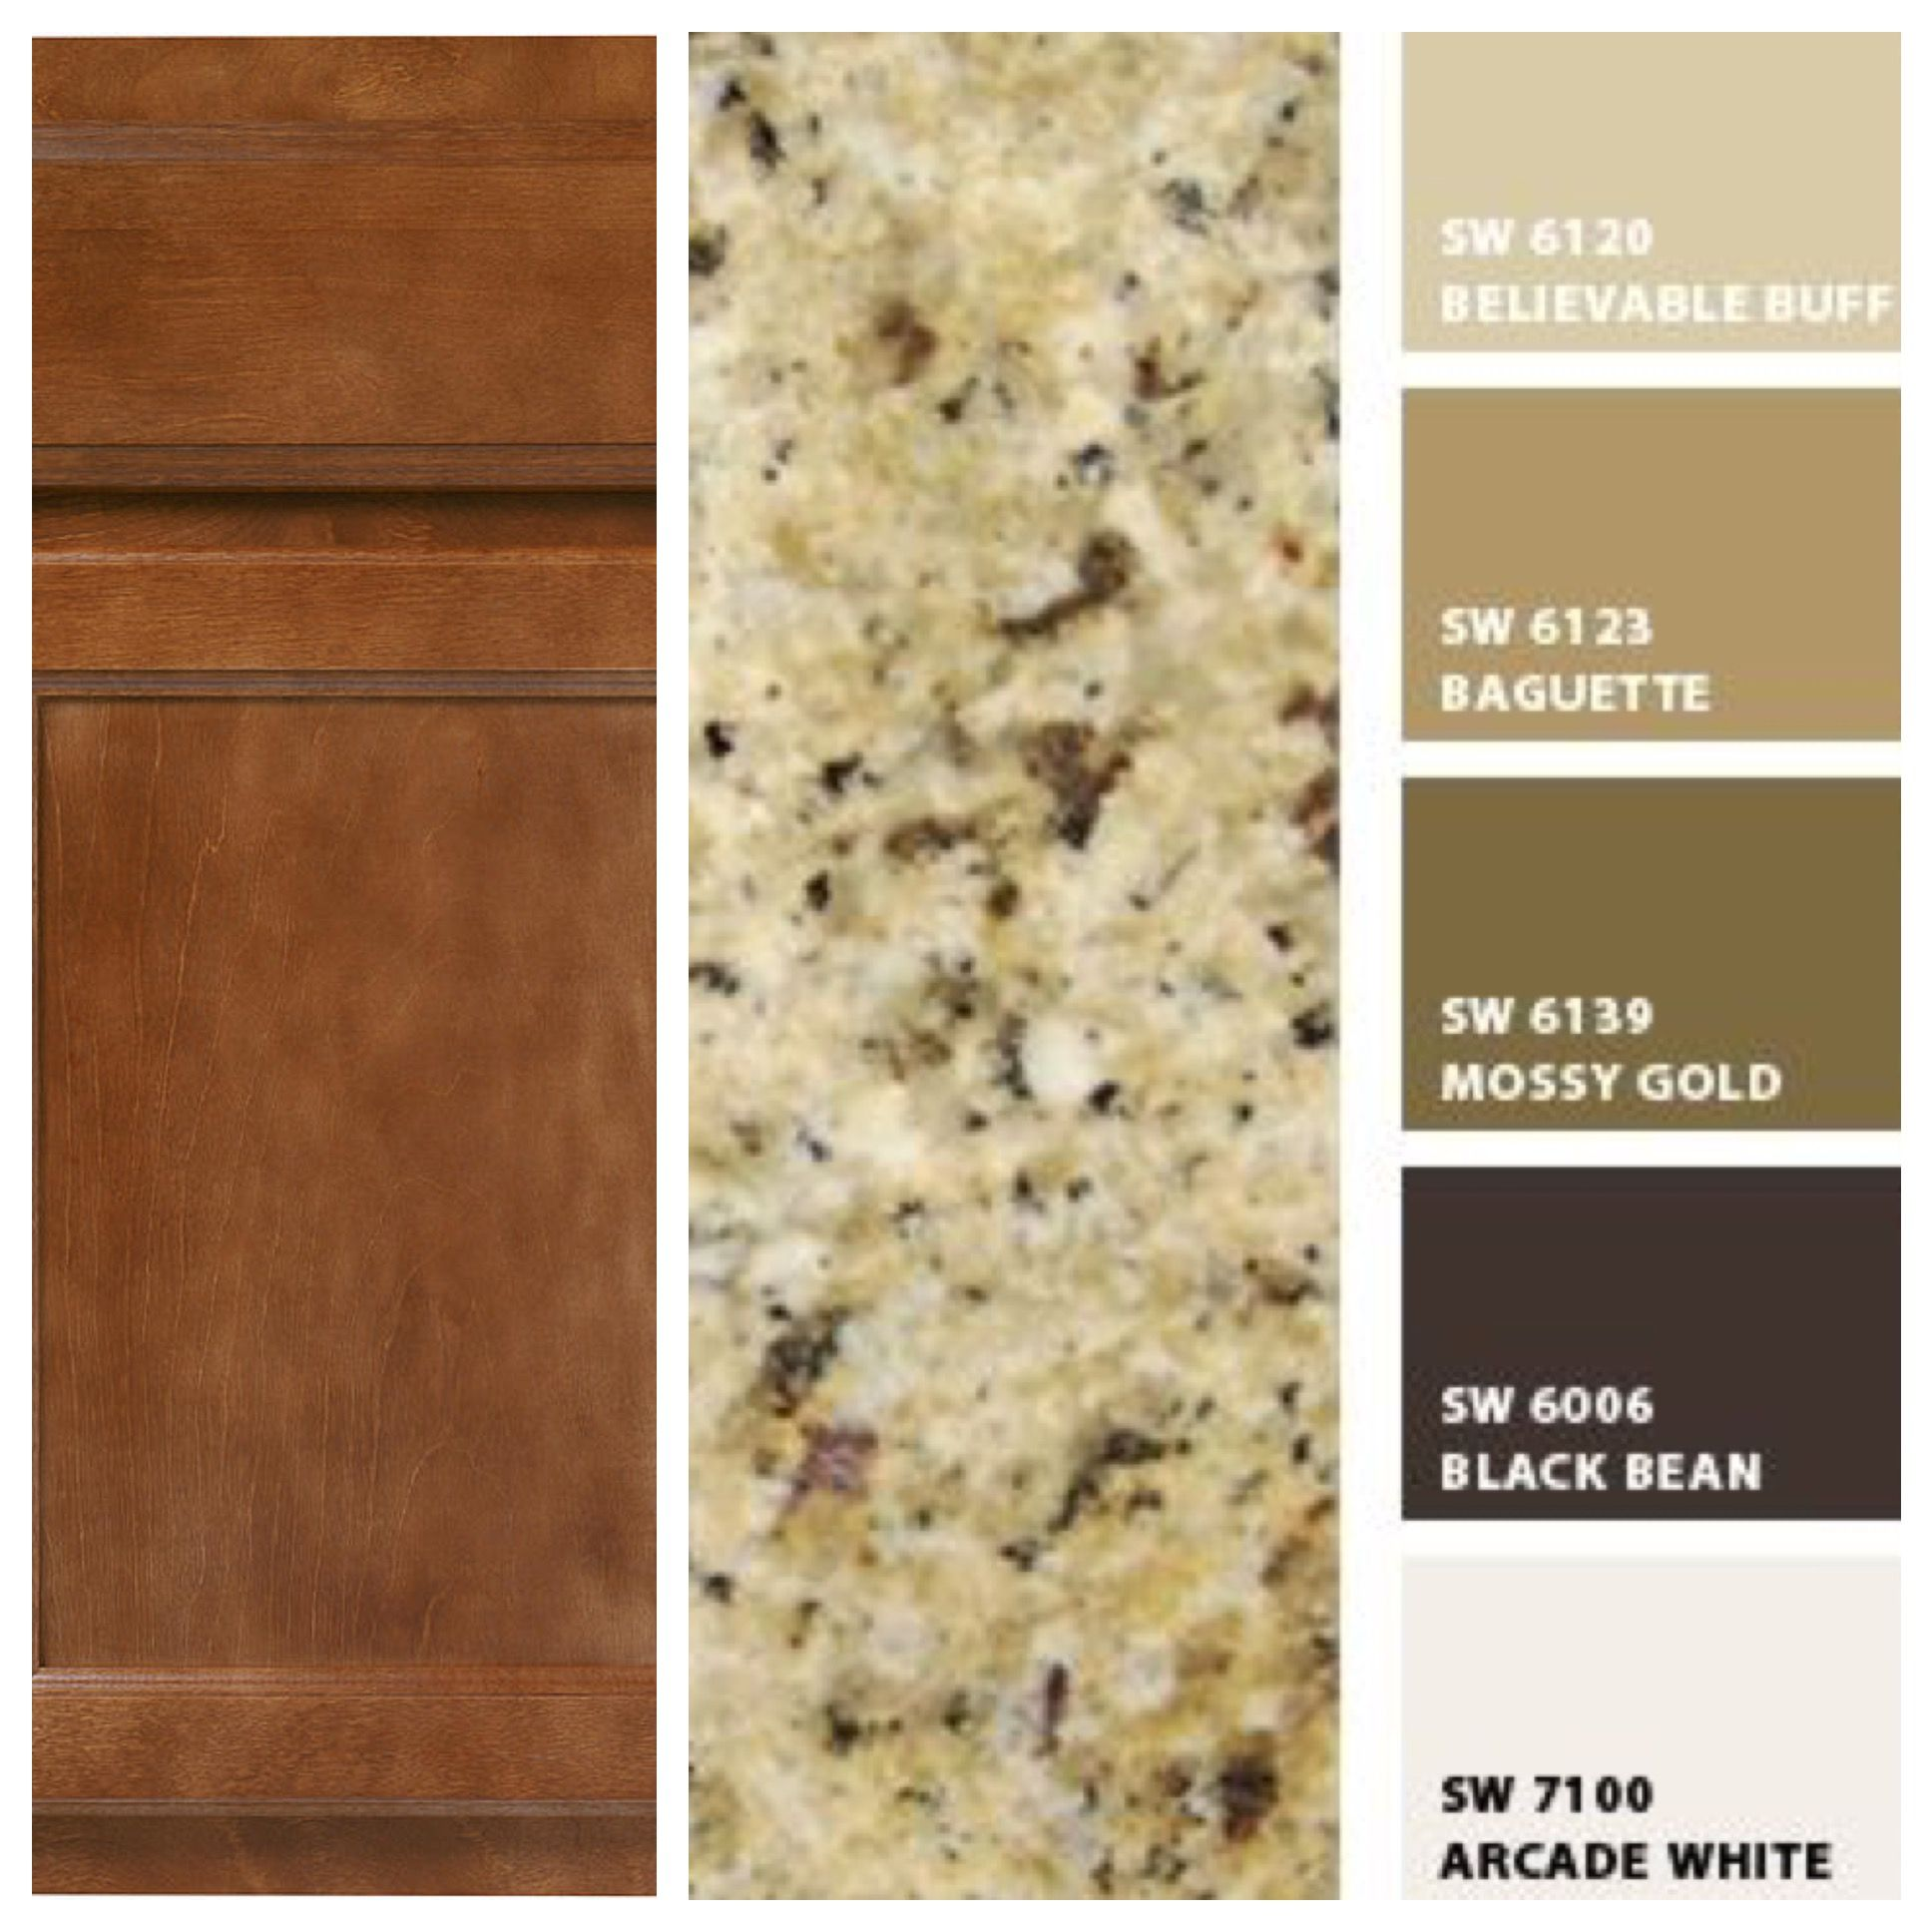 Kitchen Granite Color Combinations: I Created This Based On The Cabinets We Picked (Merillat Colony Birch